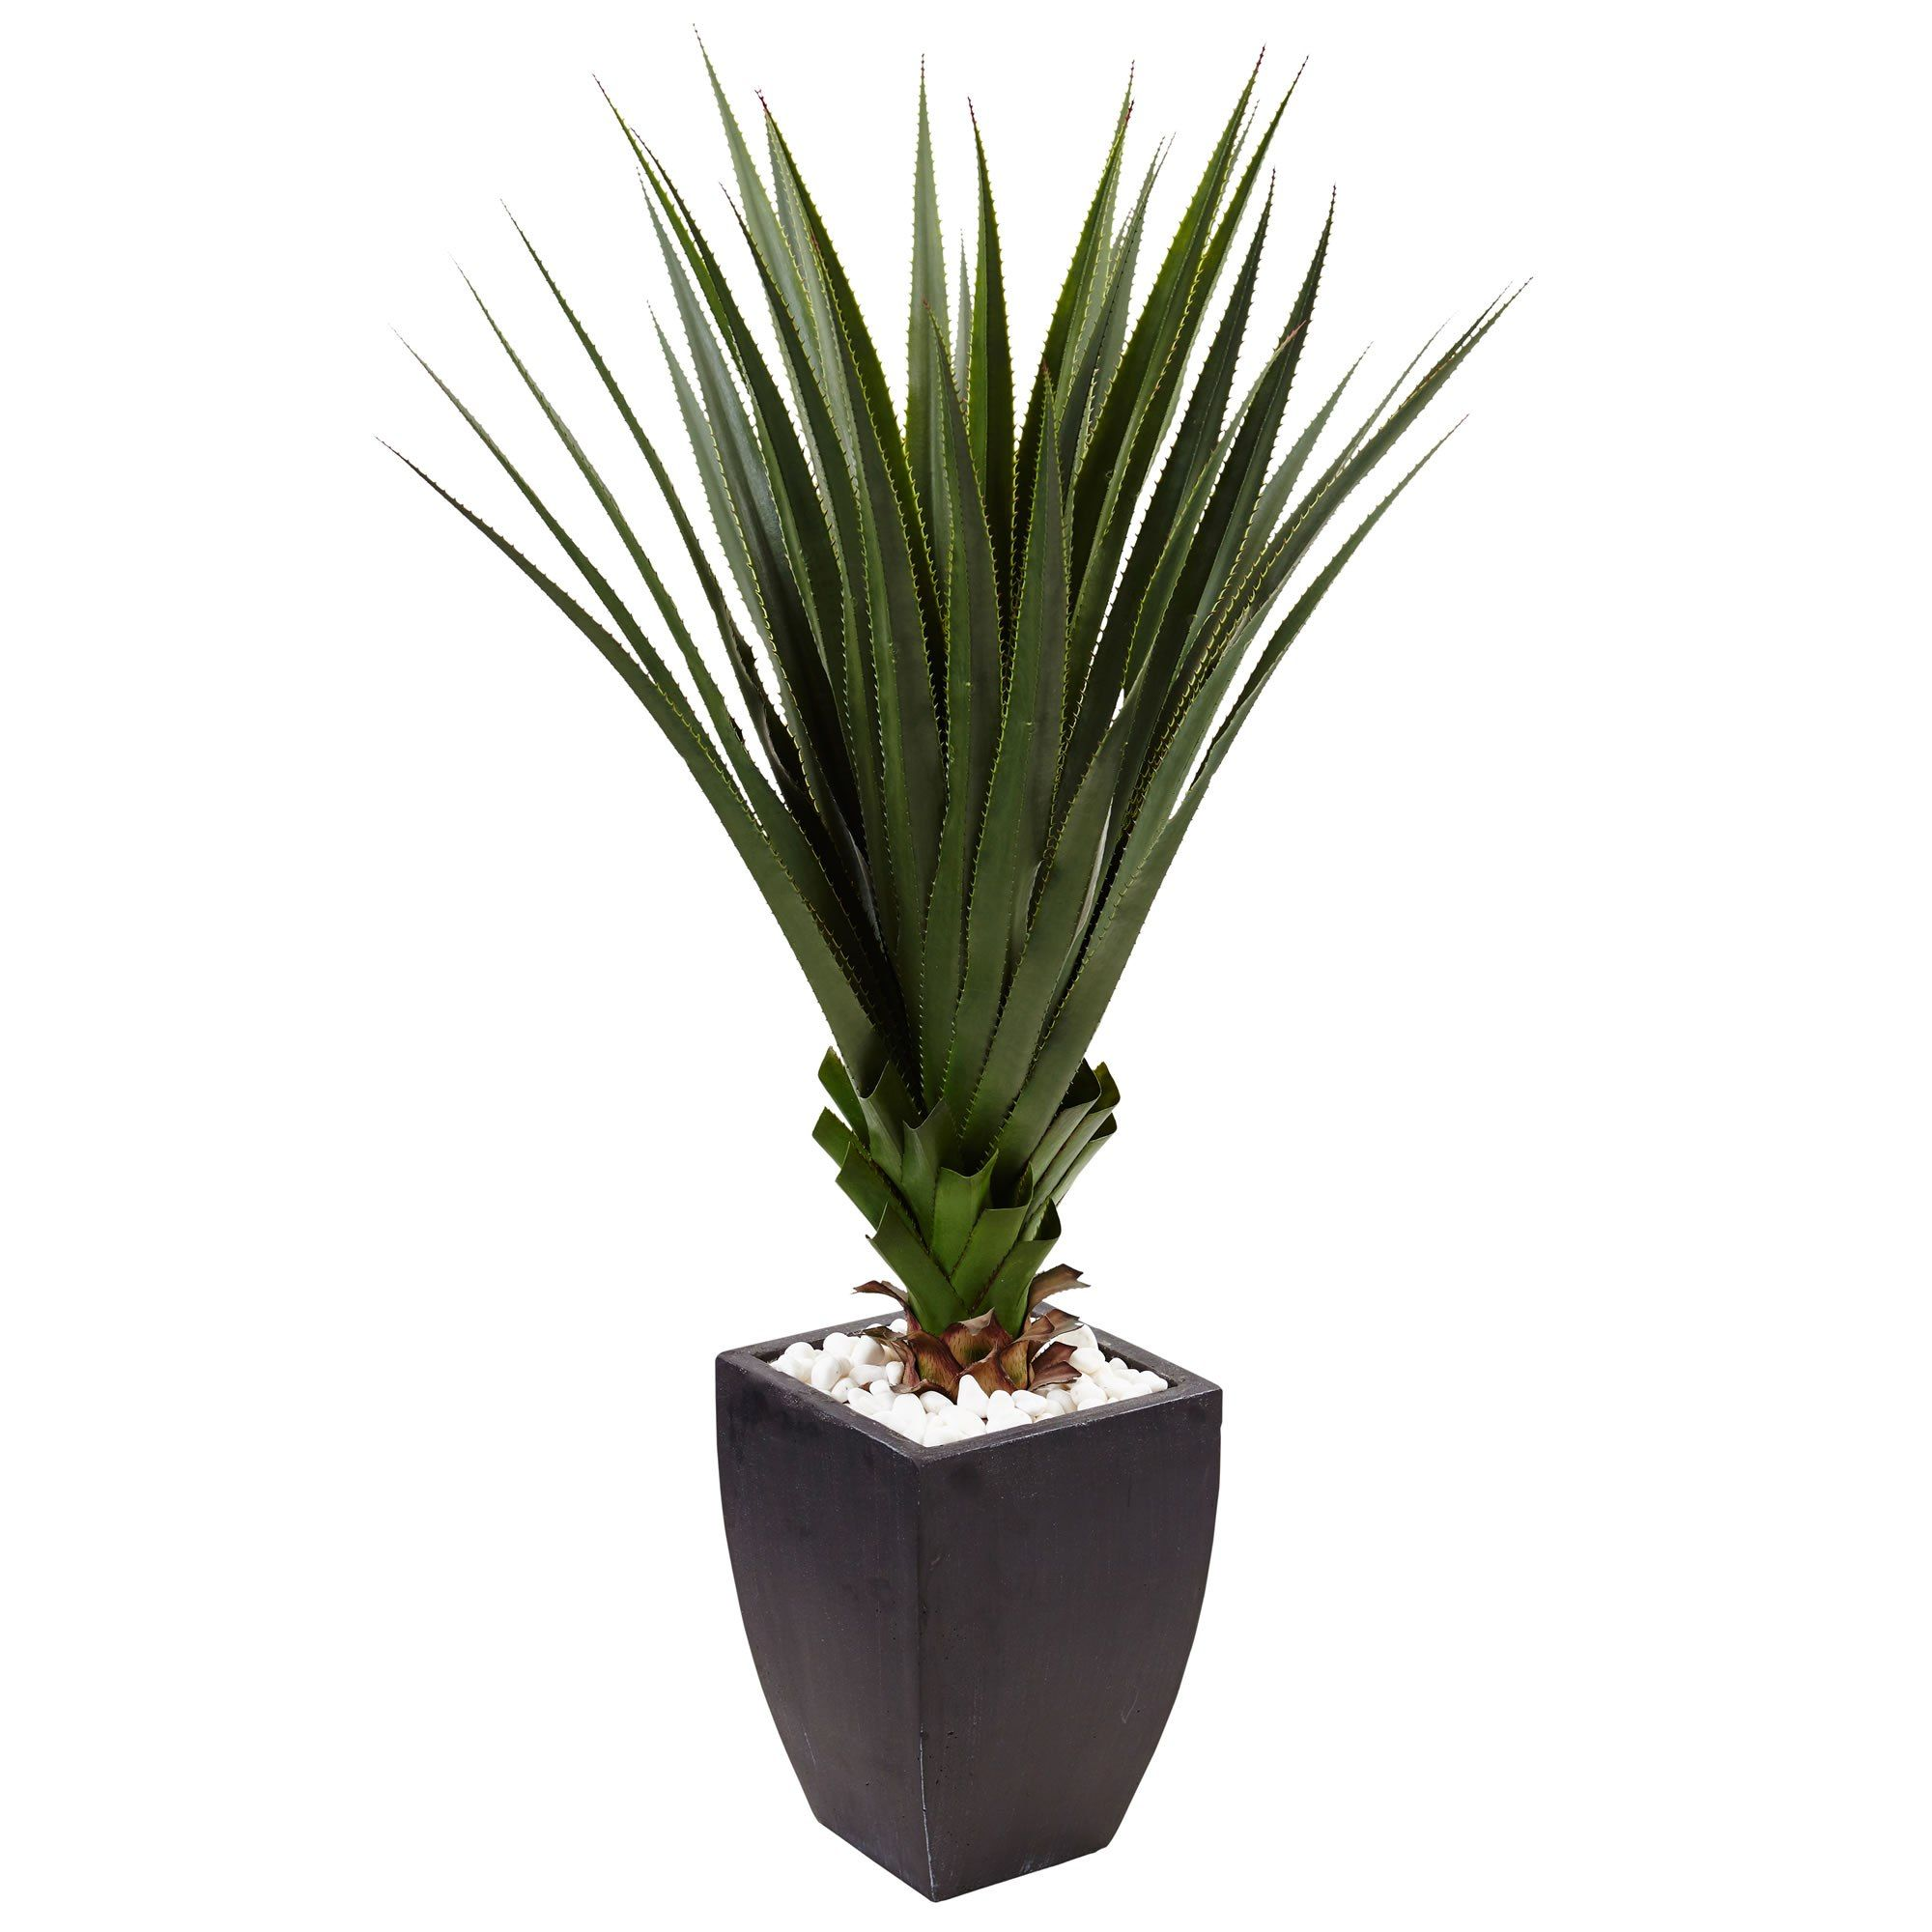 Standing Over Four Feet Tall This Spiked Agave In A Planter Will Make A Dramatic Statement Artificial Plants Outdoor Artificial Plants Small Artificial Plants